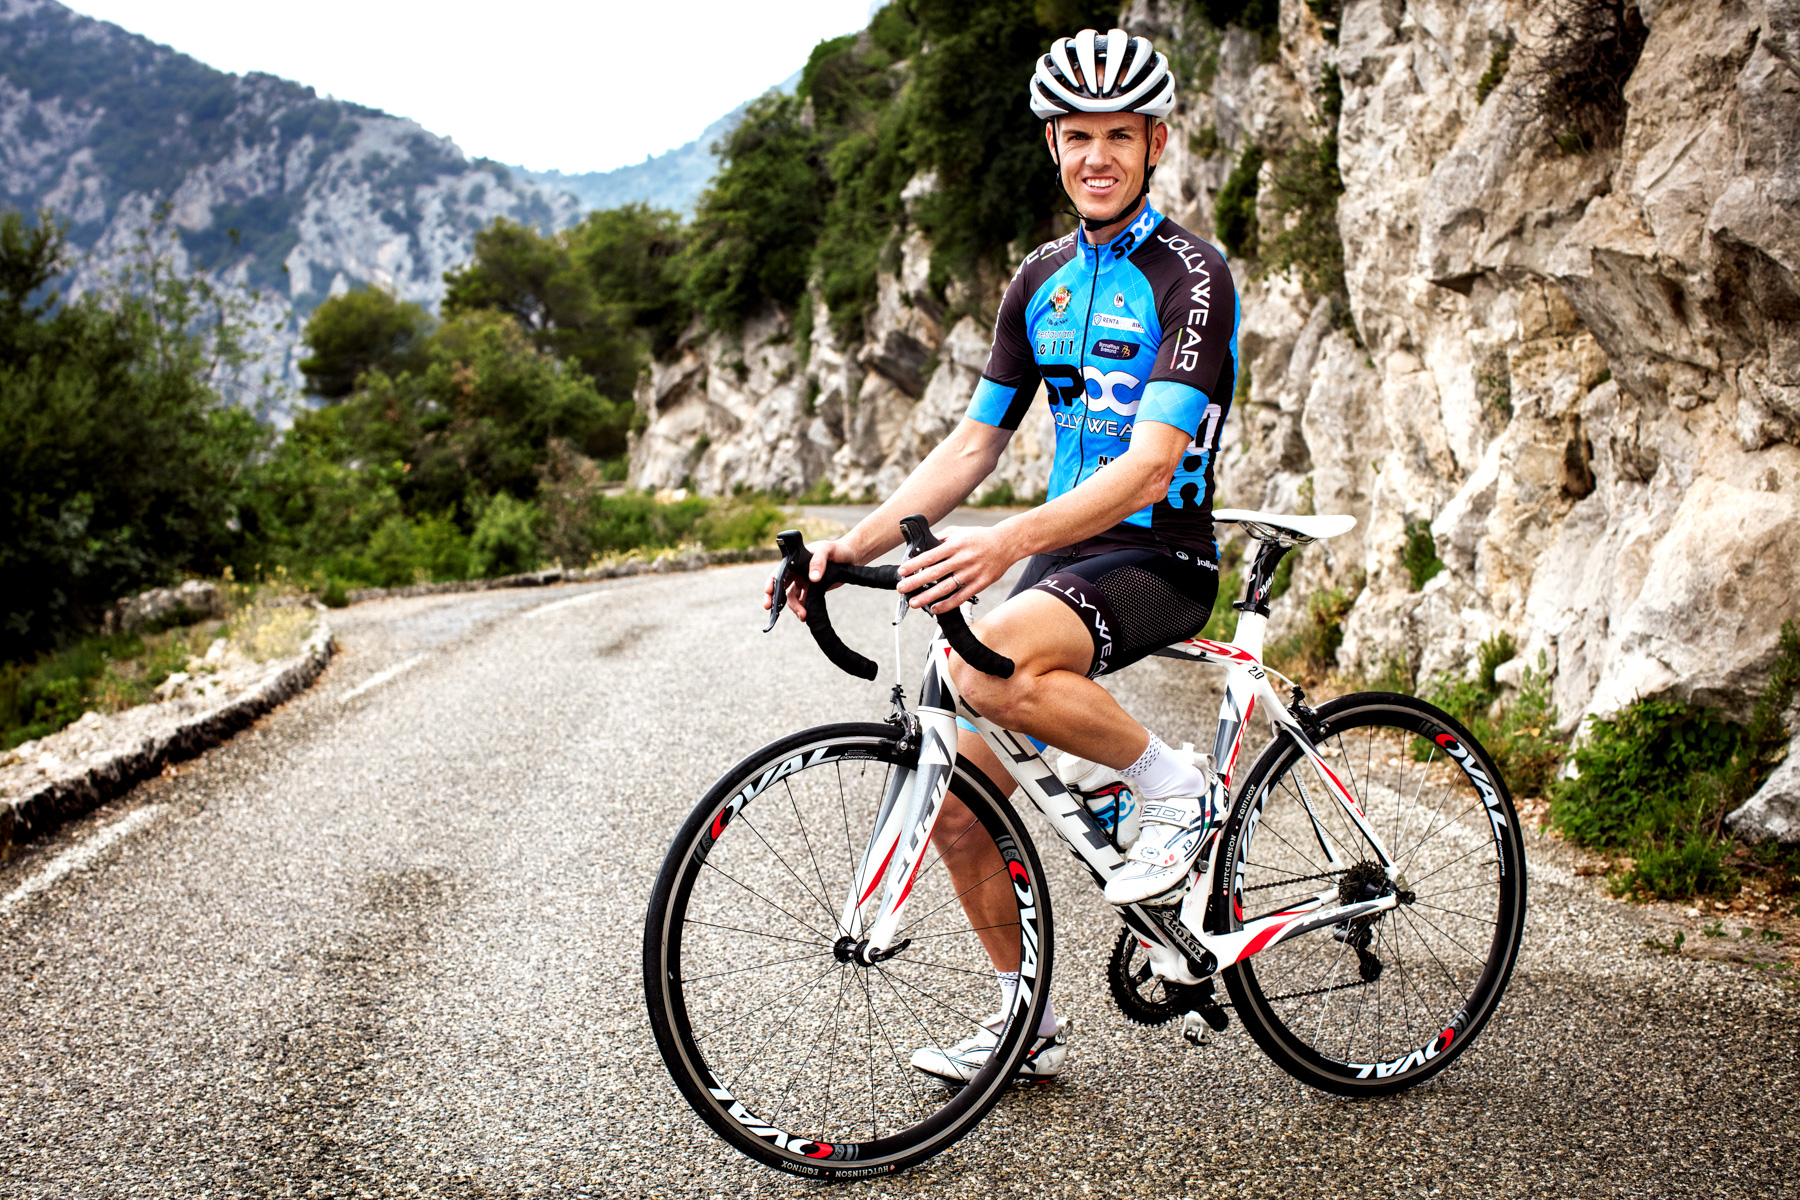 Private personalised guided cycling tours Nice, Col d'Eze, La Madone, Col de Braus and more